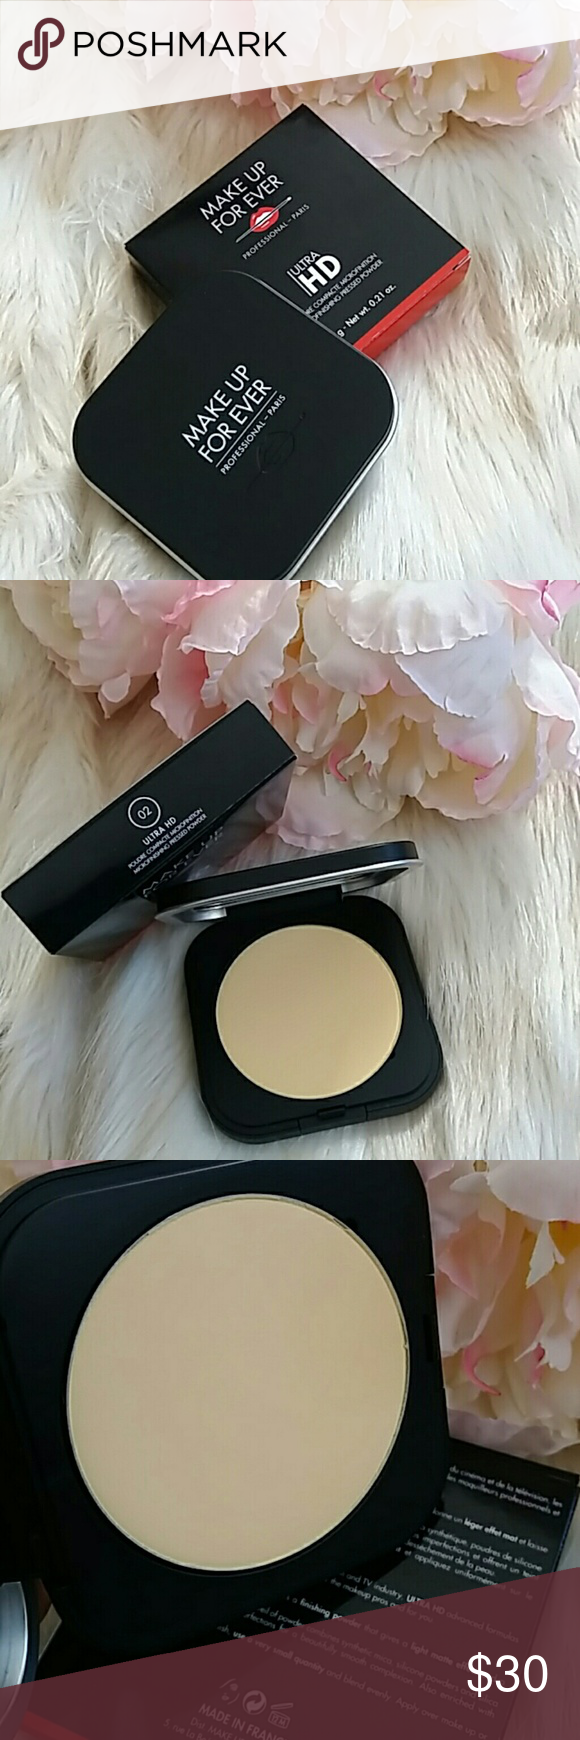 Makeup Forever Ultra HD Microfinishing Powder02 Brand New